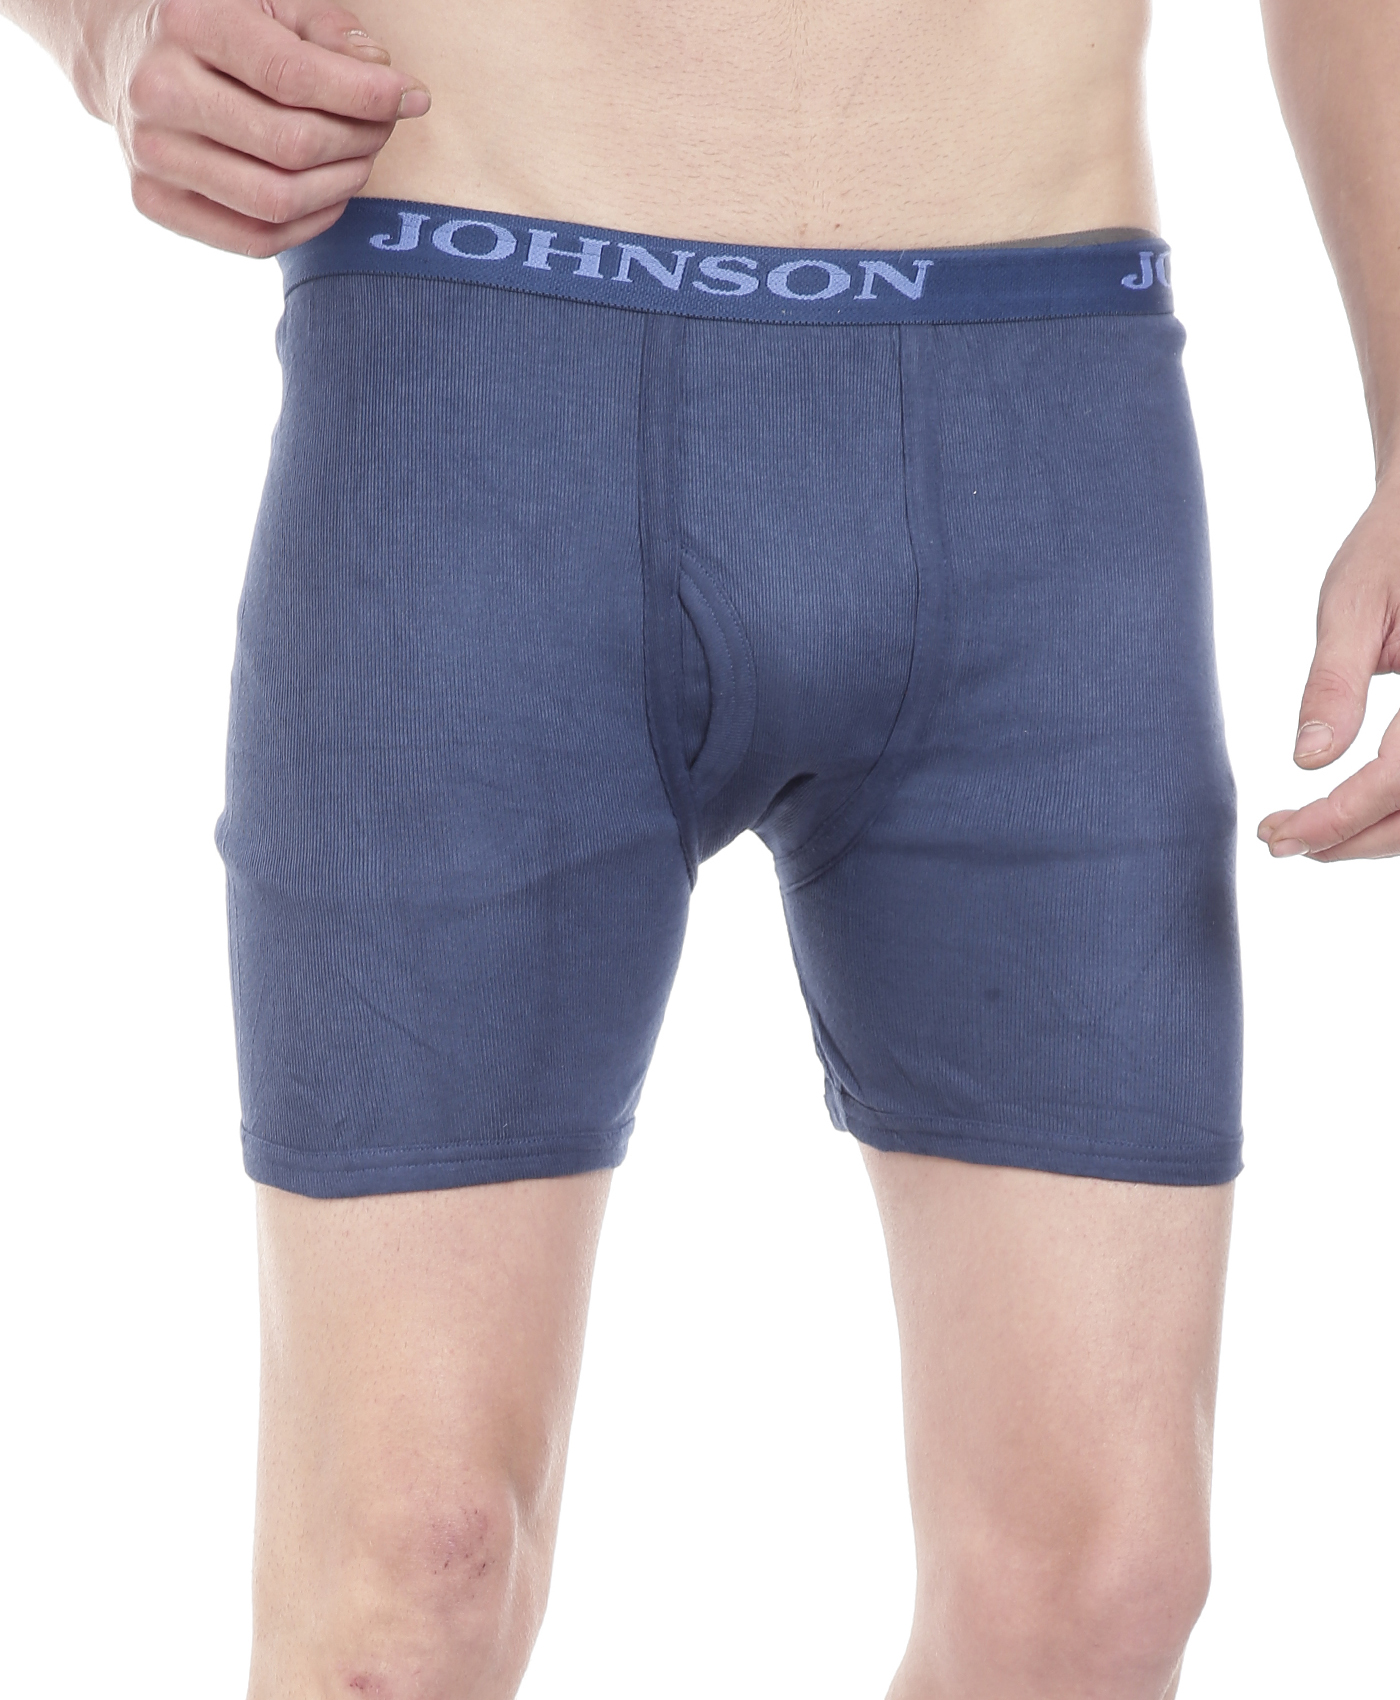 Johnson Men's Multi Color Trunks (Colors May Vary) (Pack Of 3)